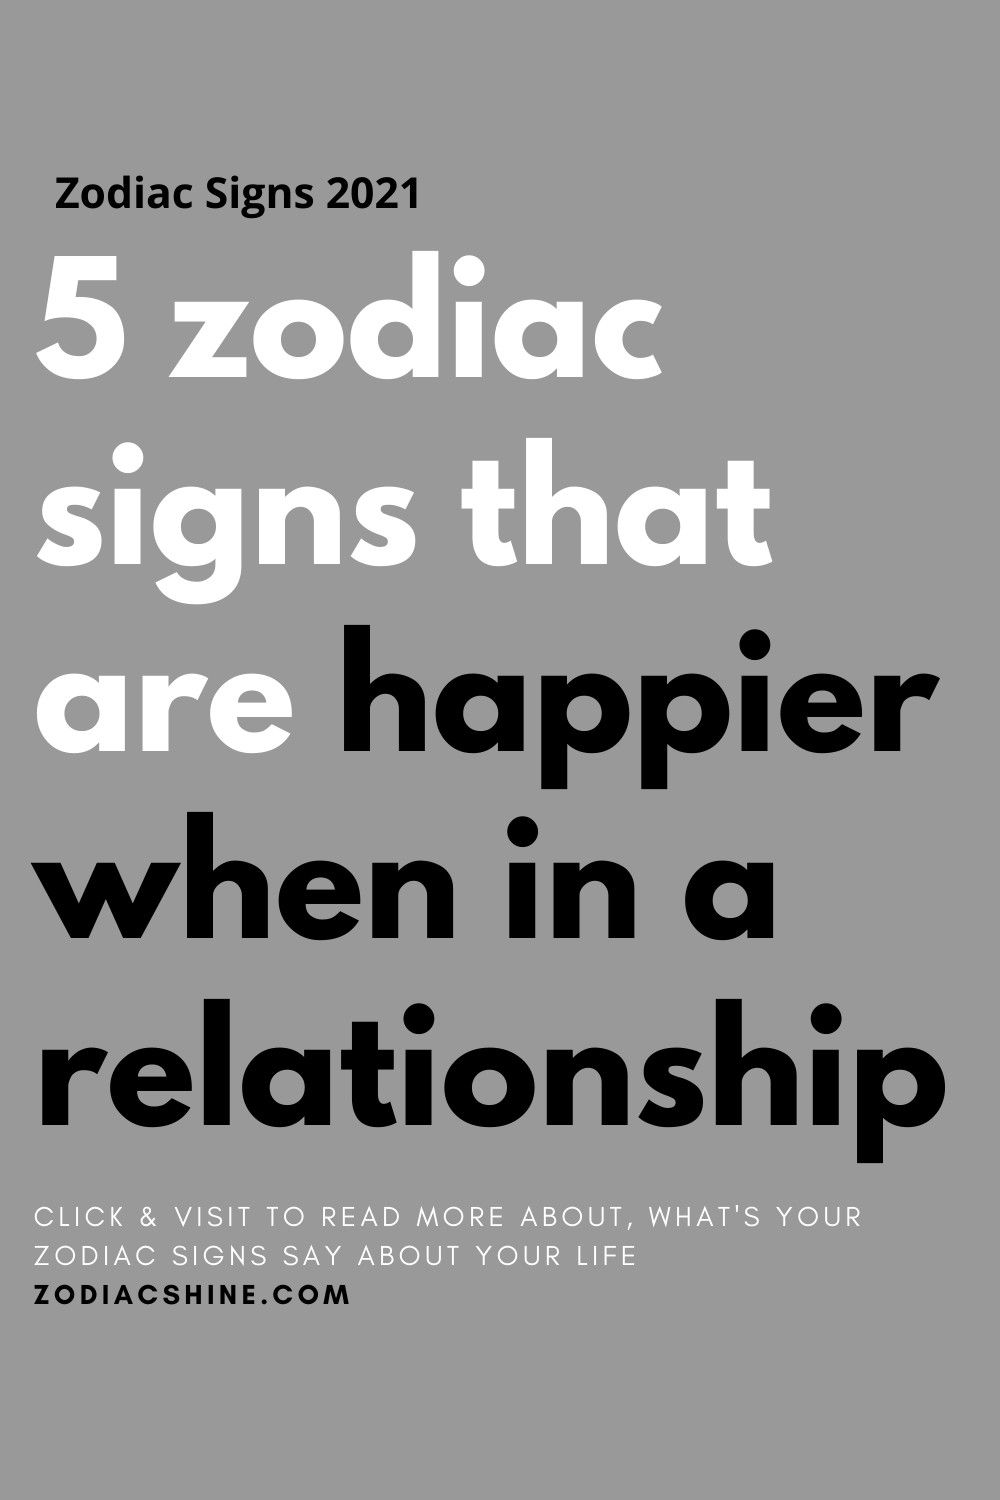 5 zodiac signs that are happier when in a relationship